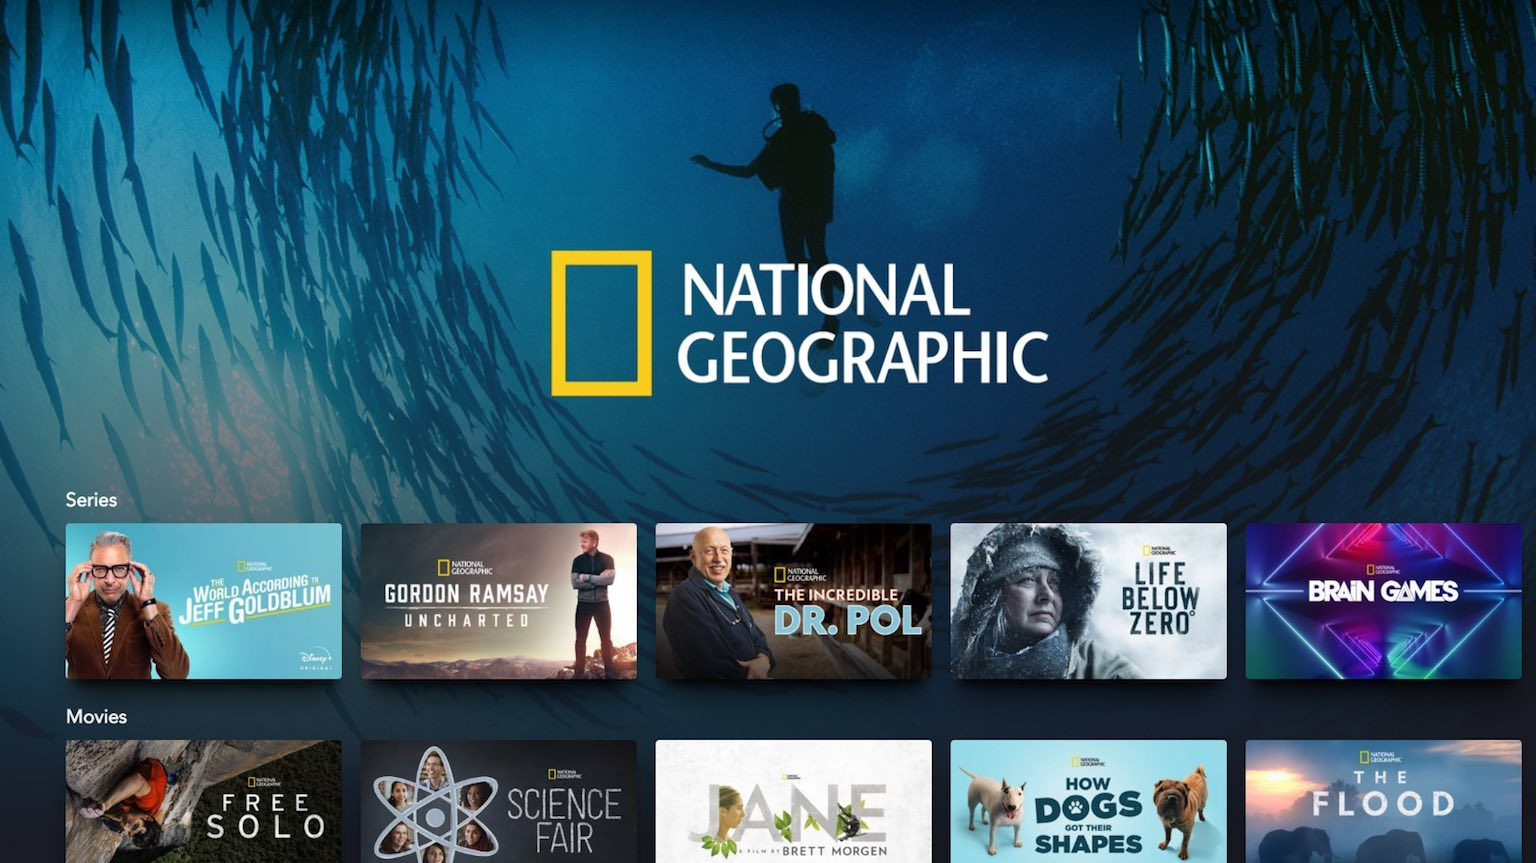 Selection of Disney+ National Geographic content